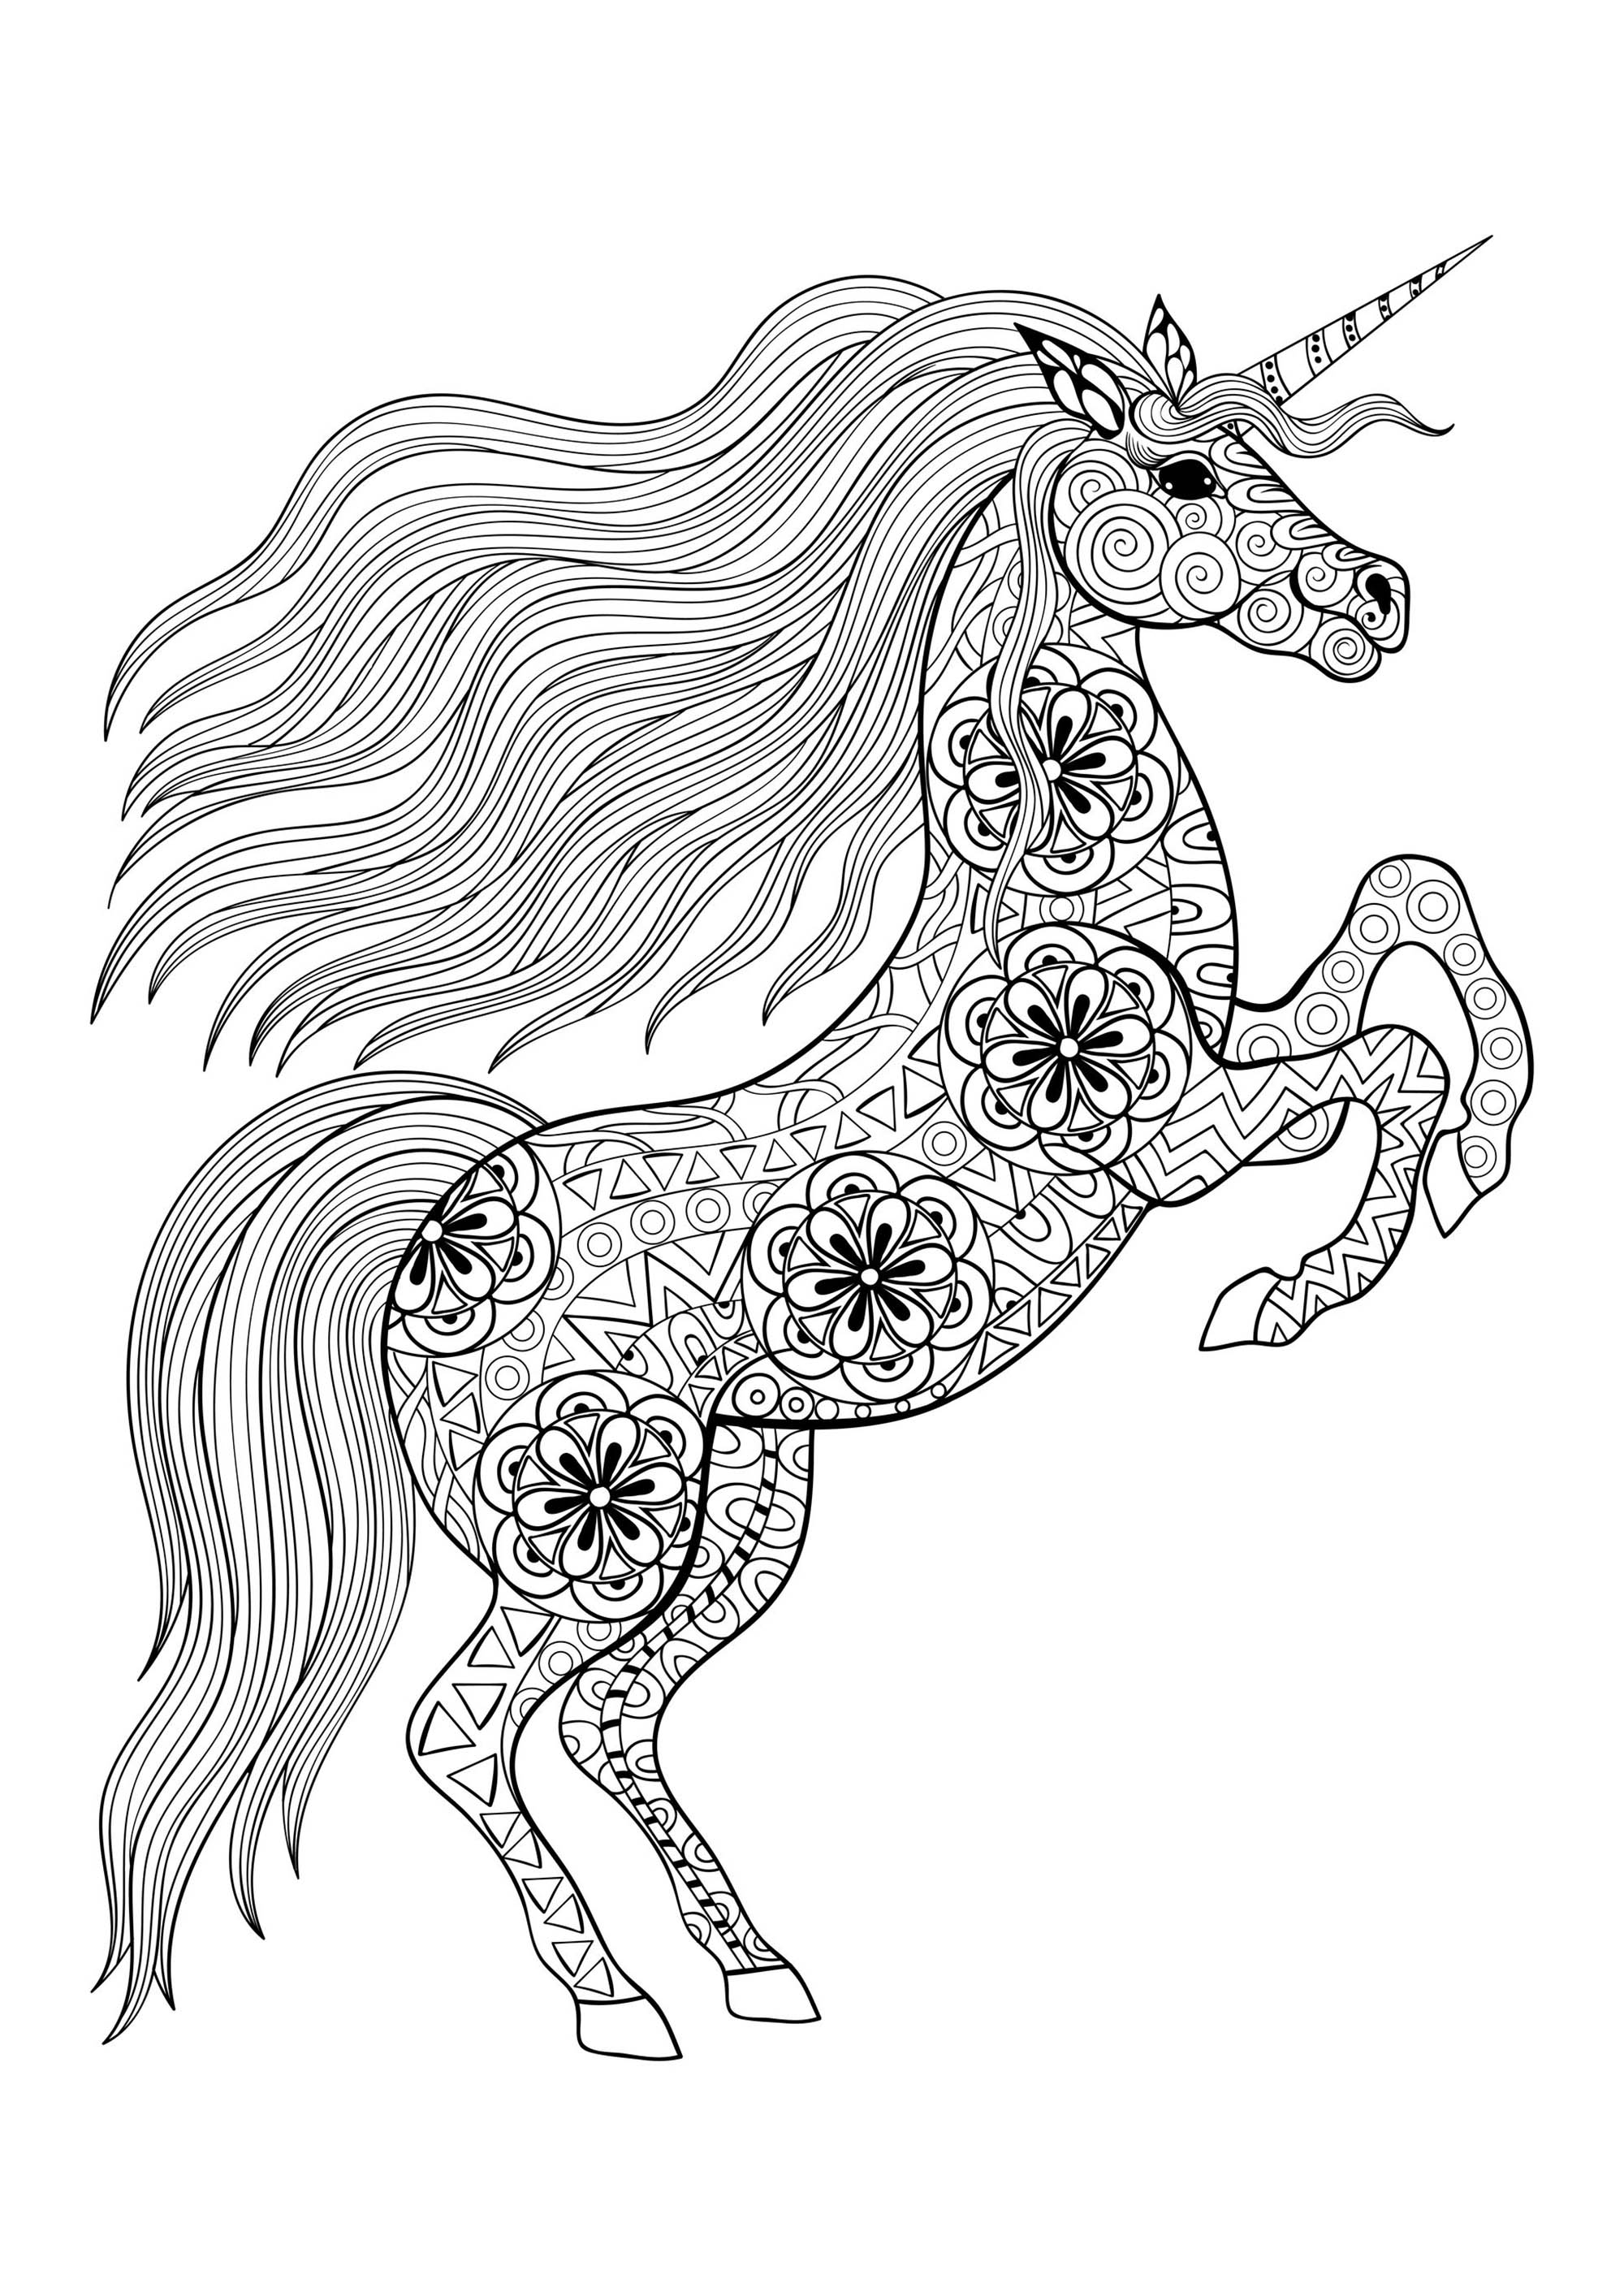 Licorne on its two back legs licornes coloriages difficiles pour adultes - Licorne dessin a imprimer ...